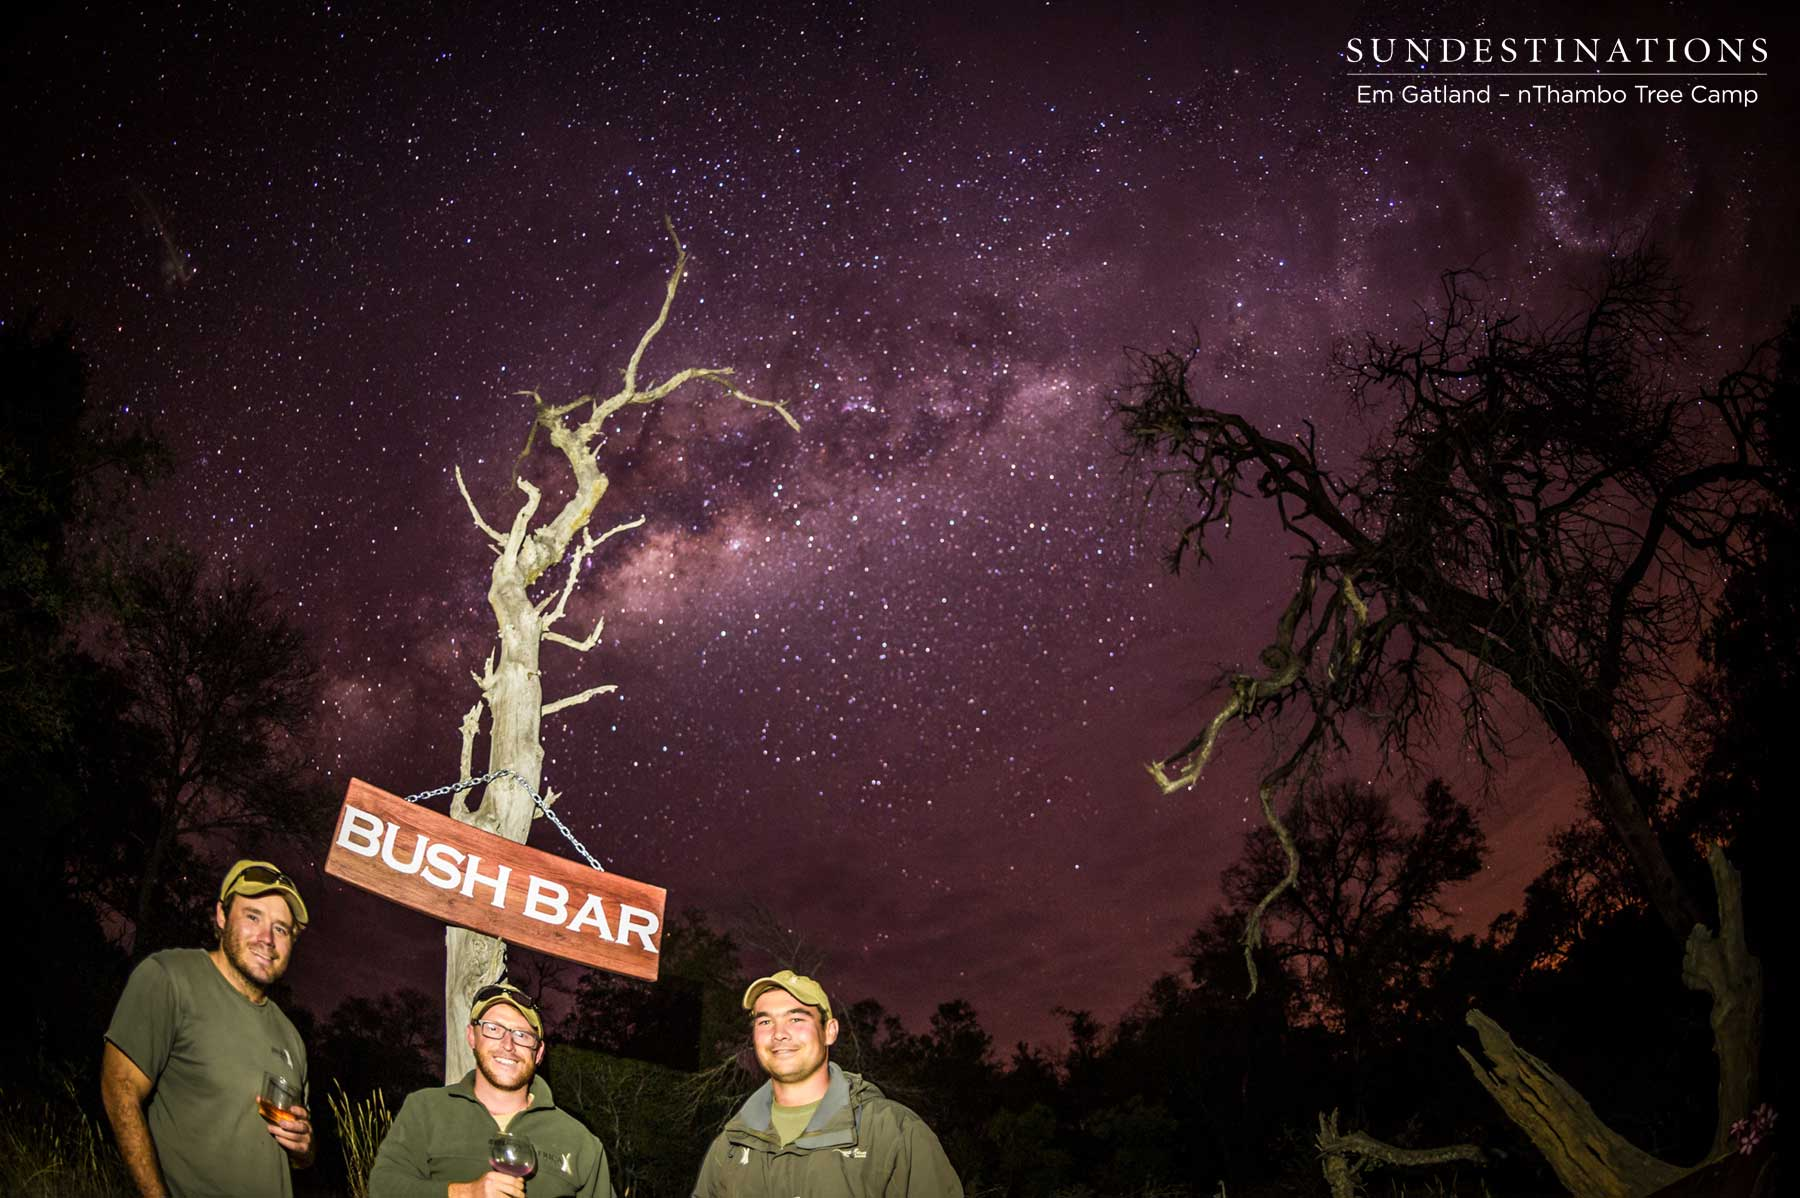 The Boys who Built the Bush Bar